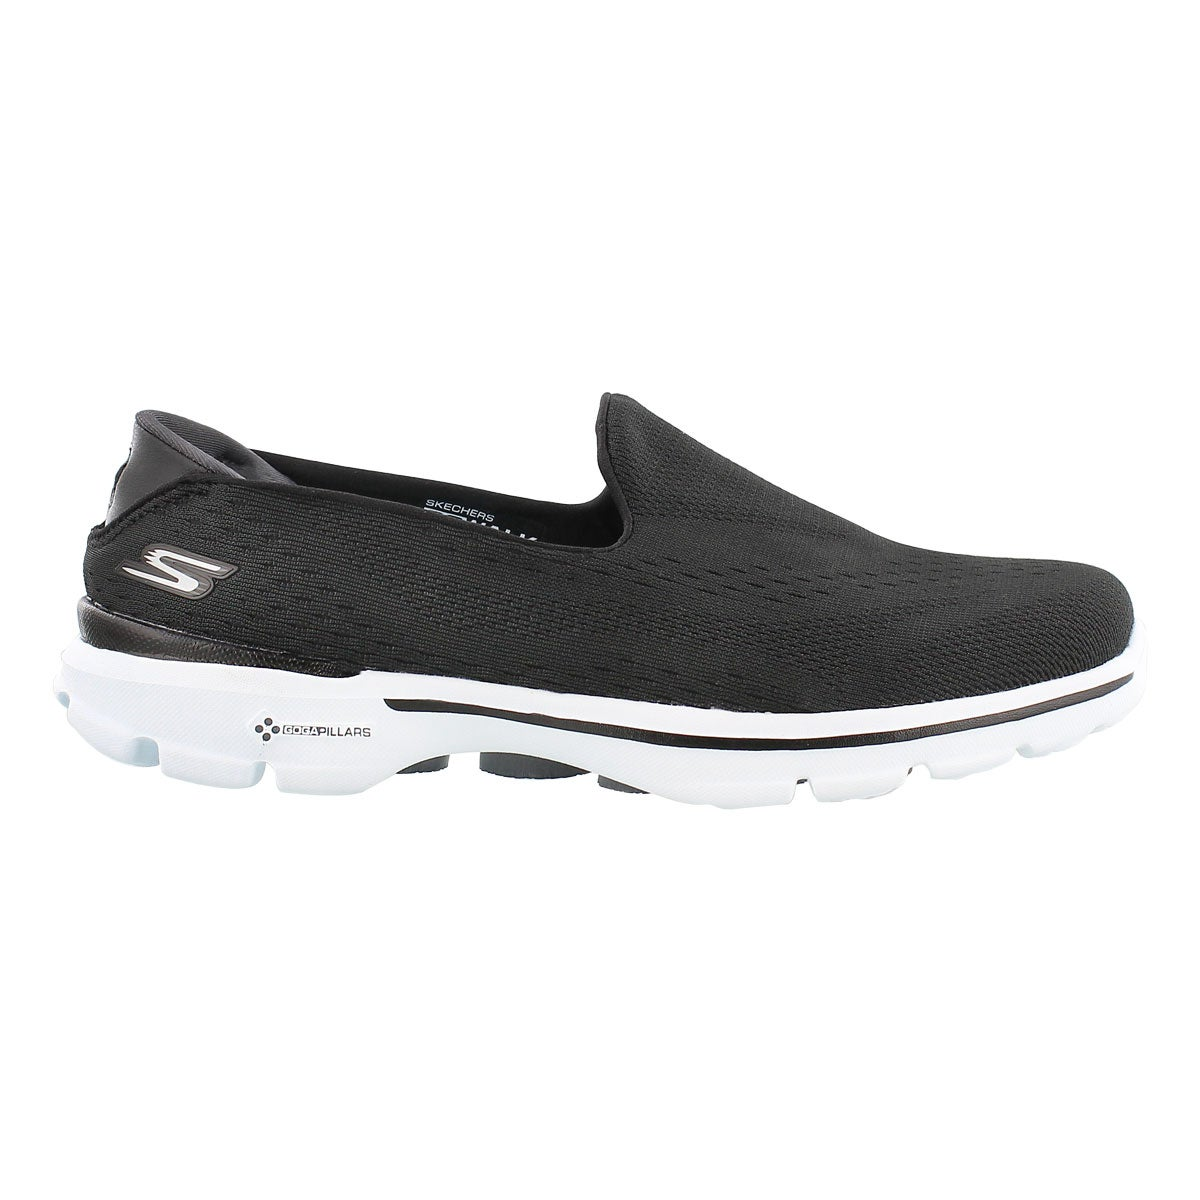 Lds GOwalk 3 blk/wht slipon walking shoe